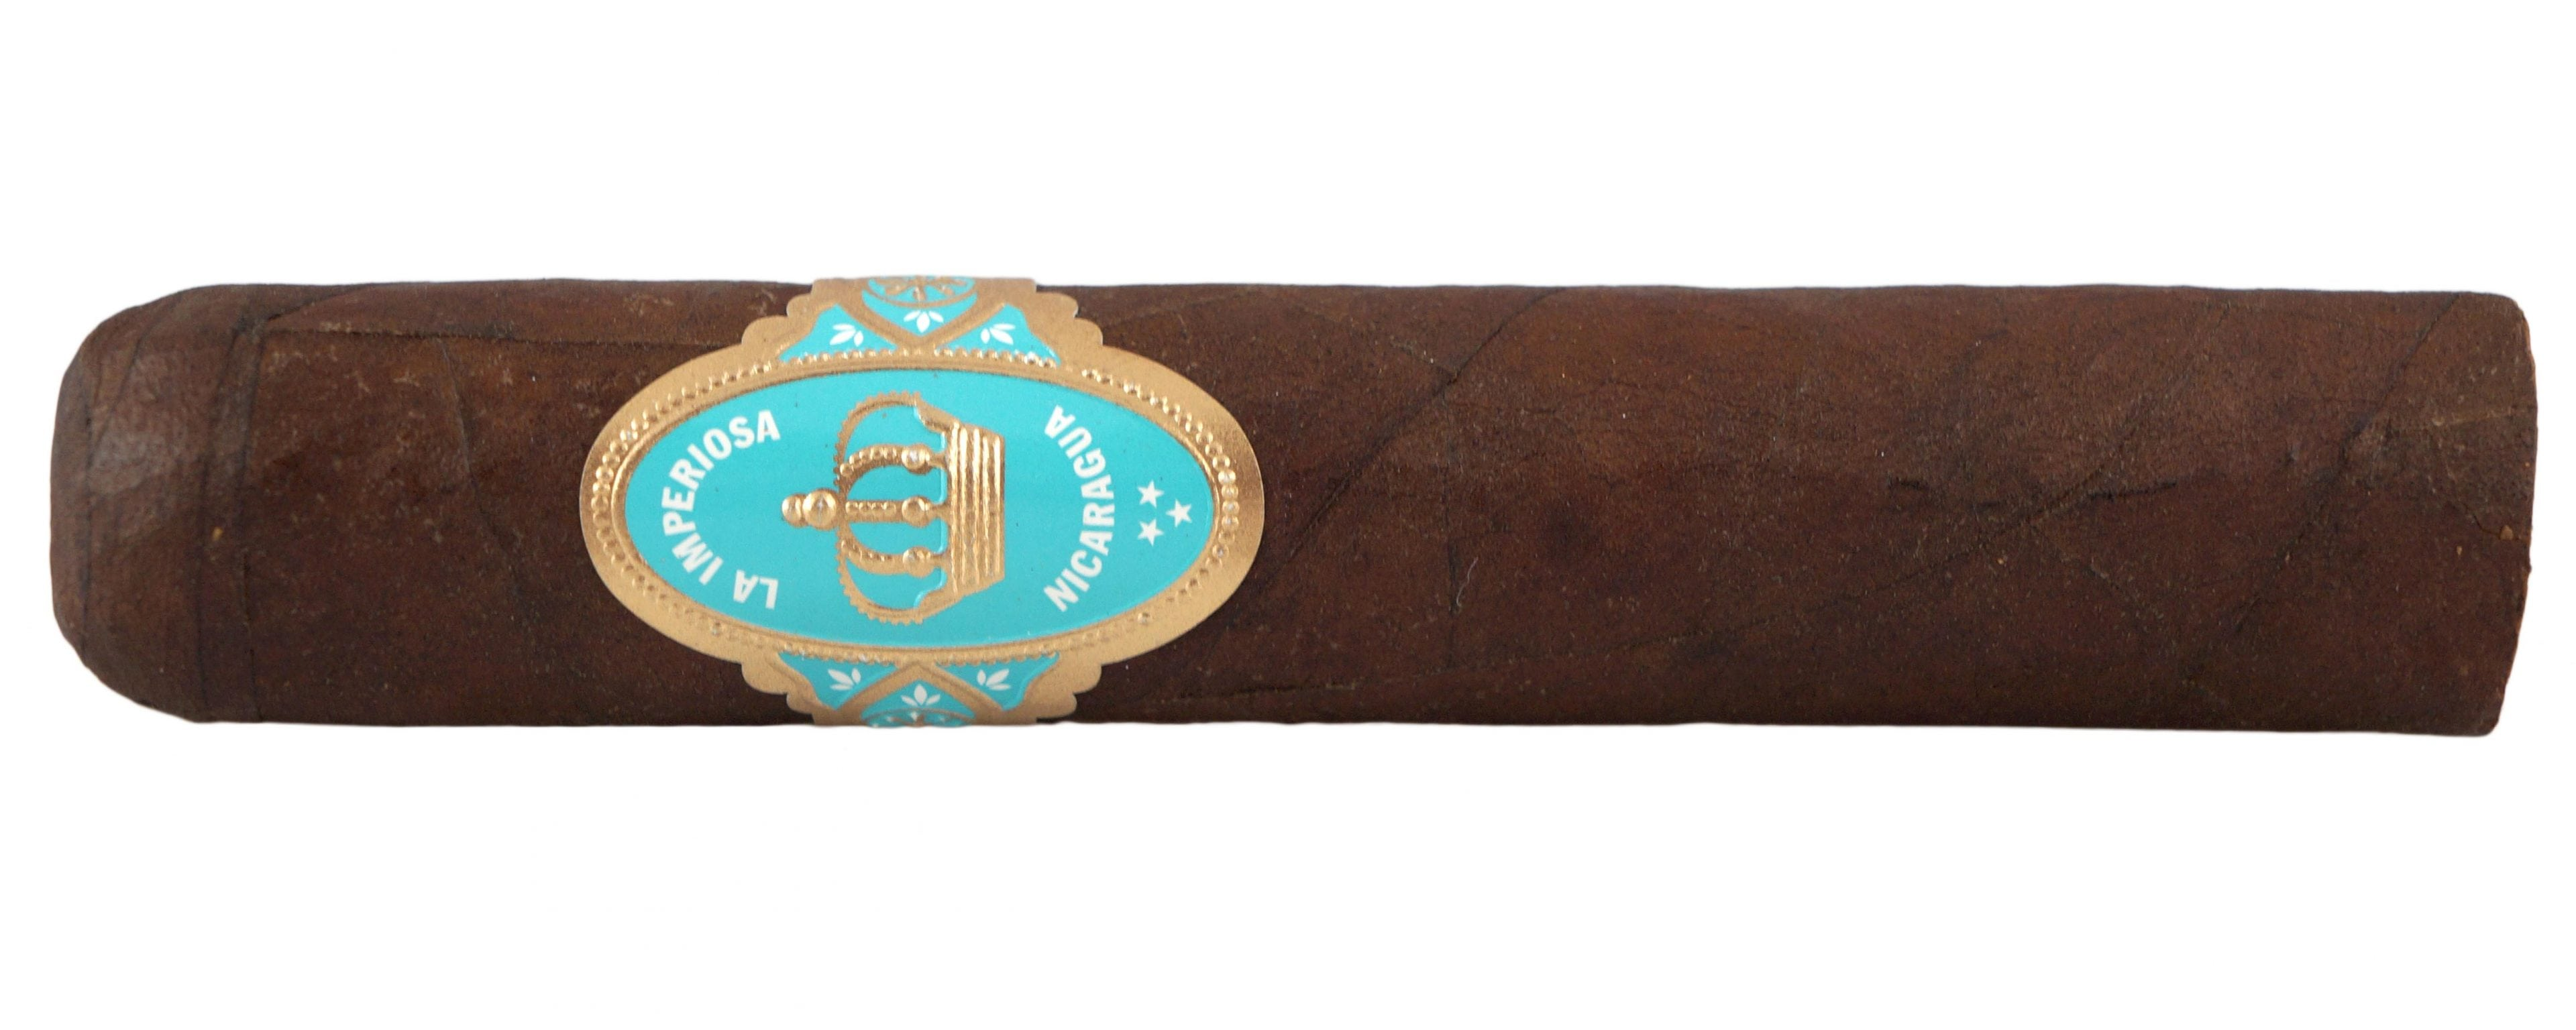 Blind Cigar Review: Crowned Heads | La Imperiosa Magicos